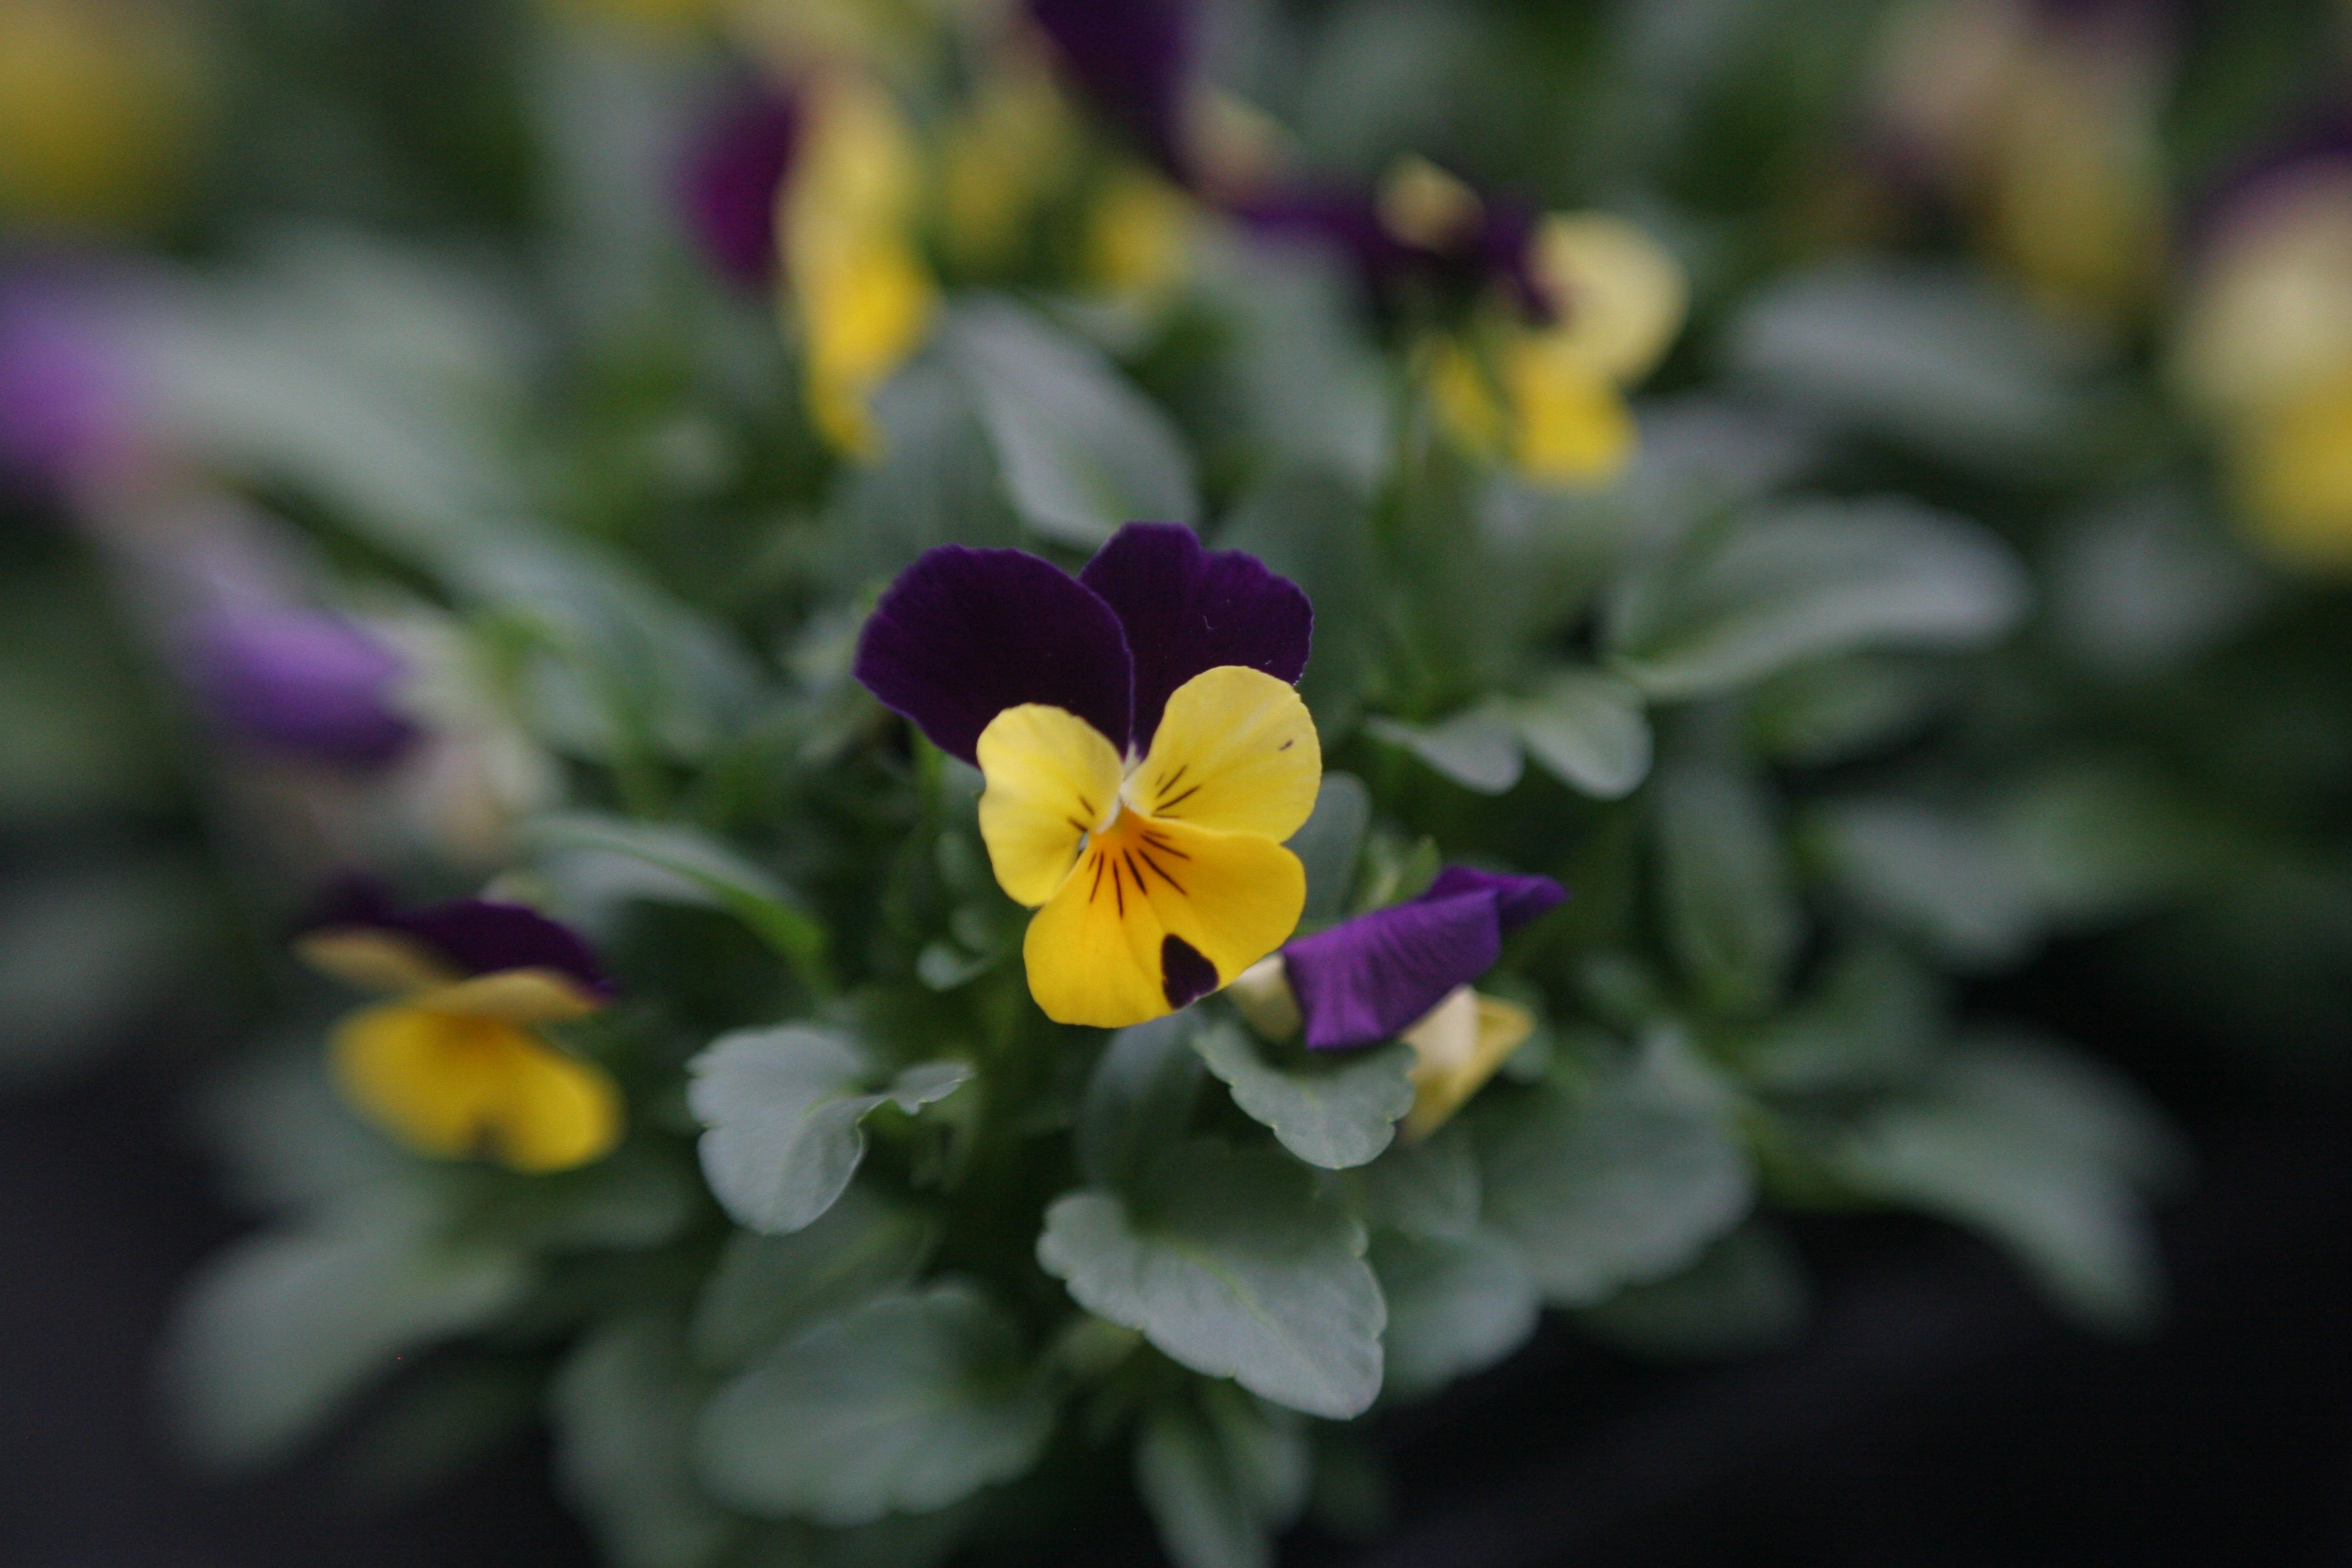 photo of yellow and purple flower with green leaves spring creative focus photography kids photography Amy Cyphers